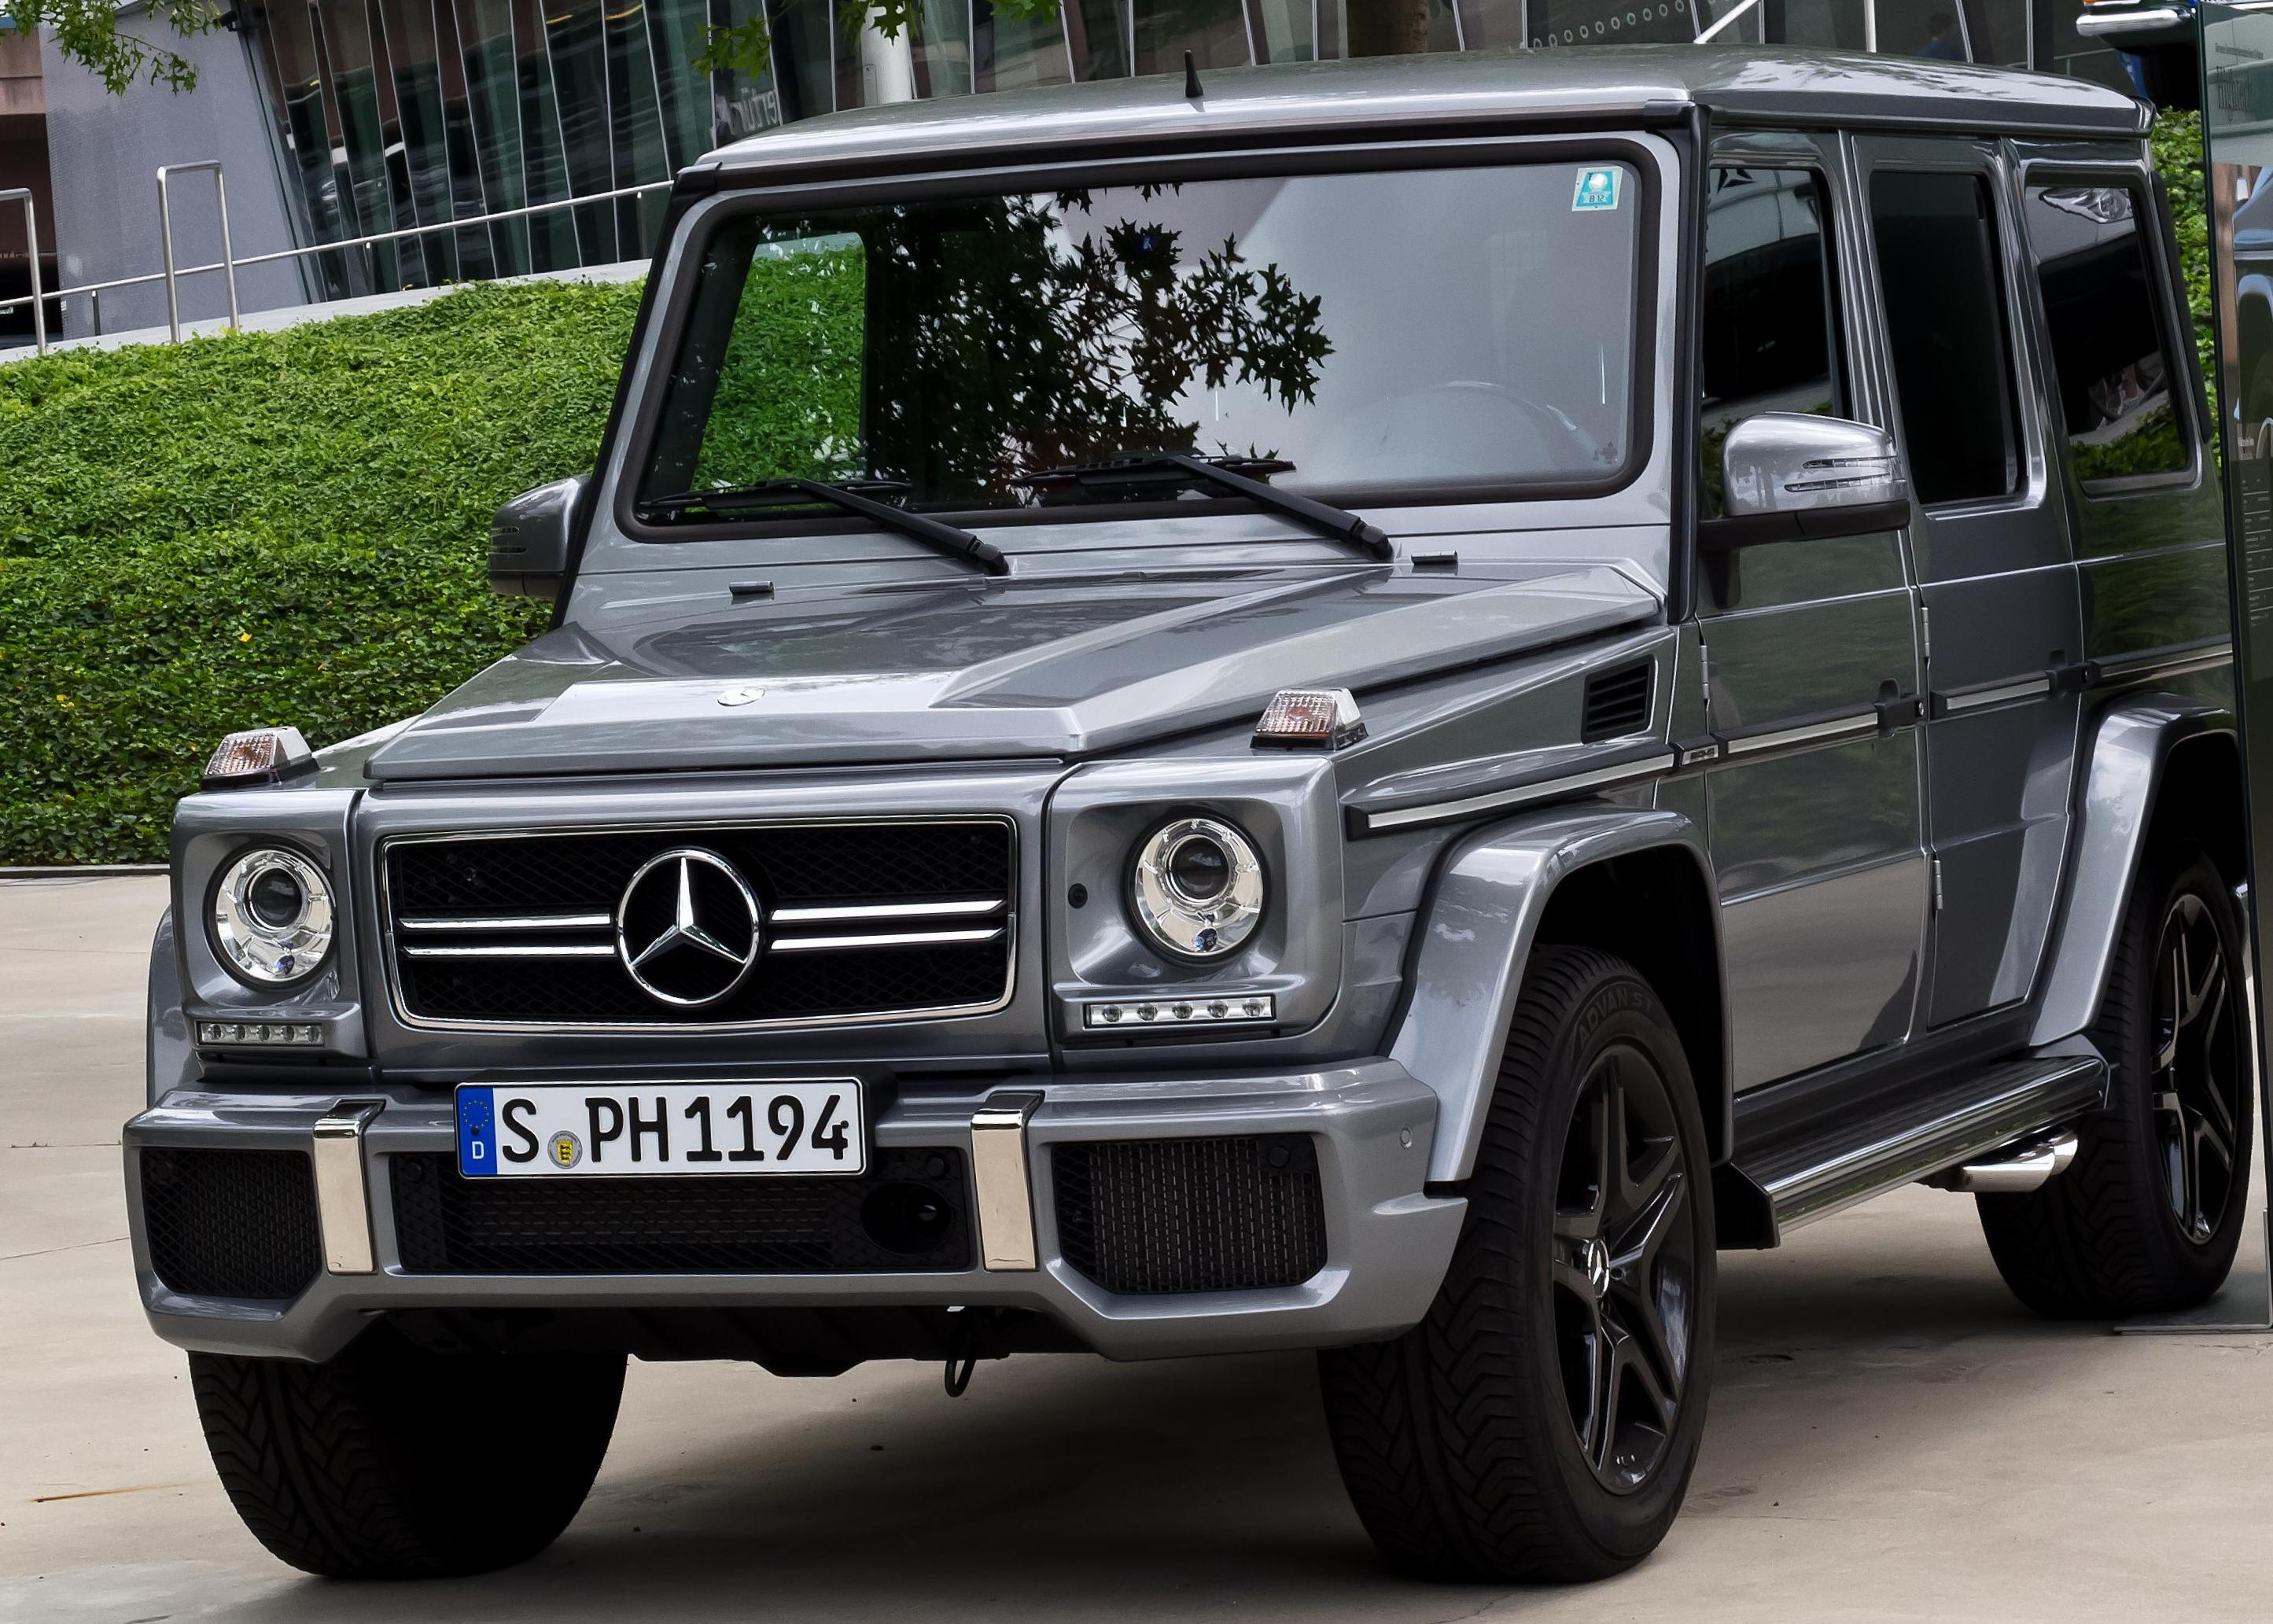 Mercedes G-Class AMG (W463) Specification cabriolet